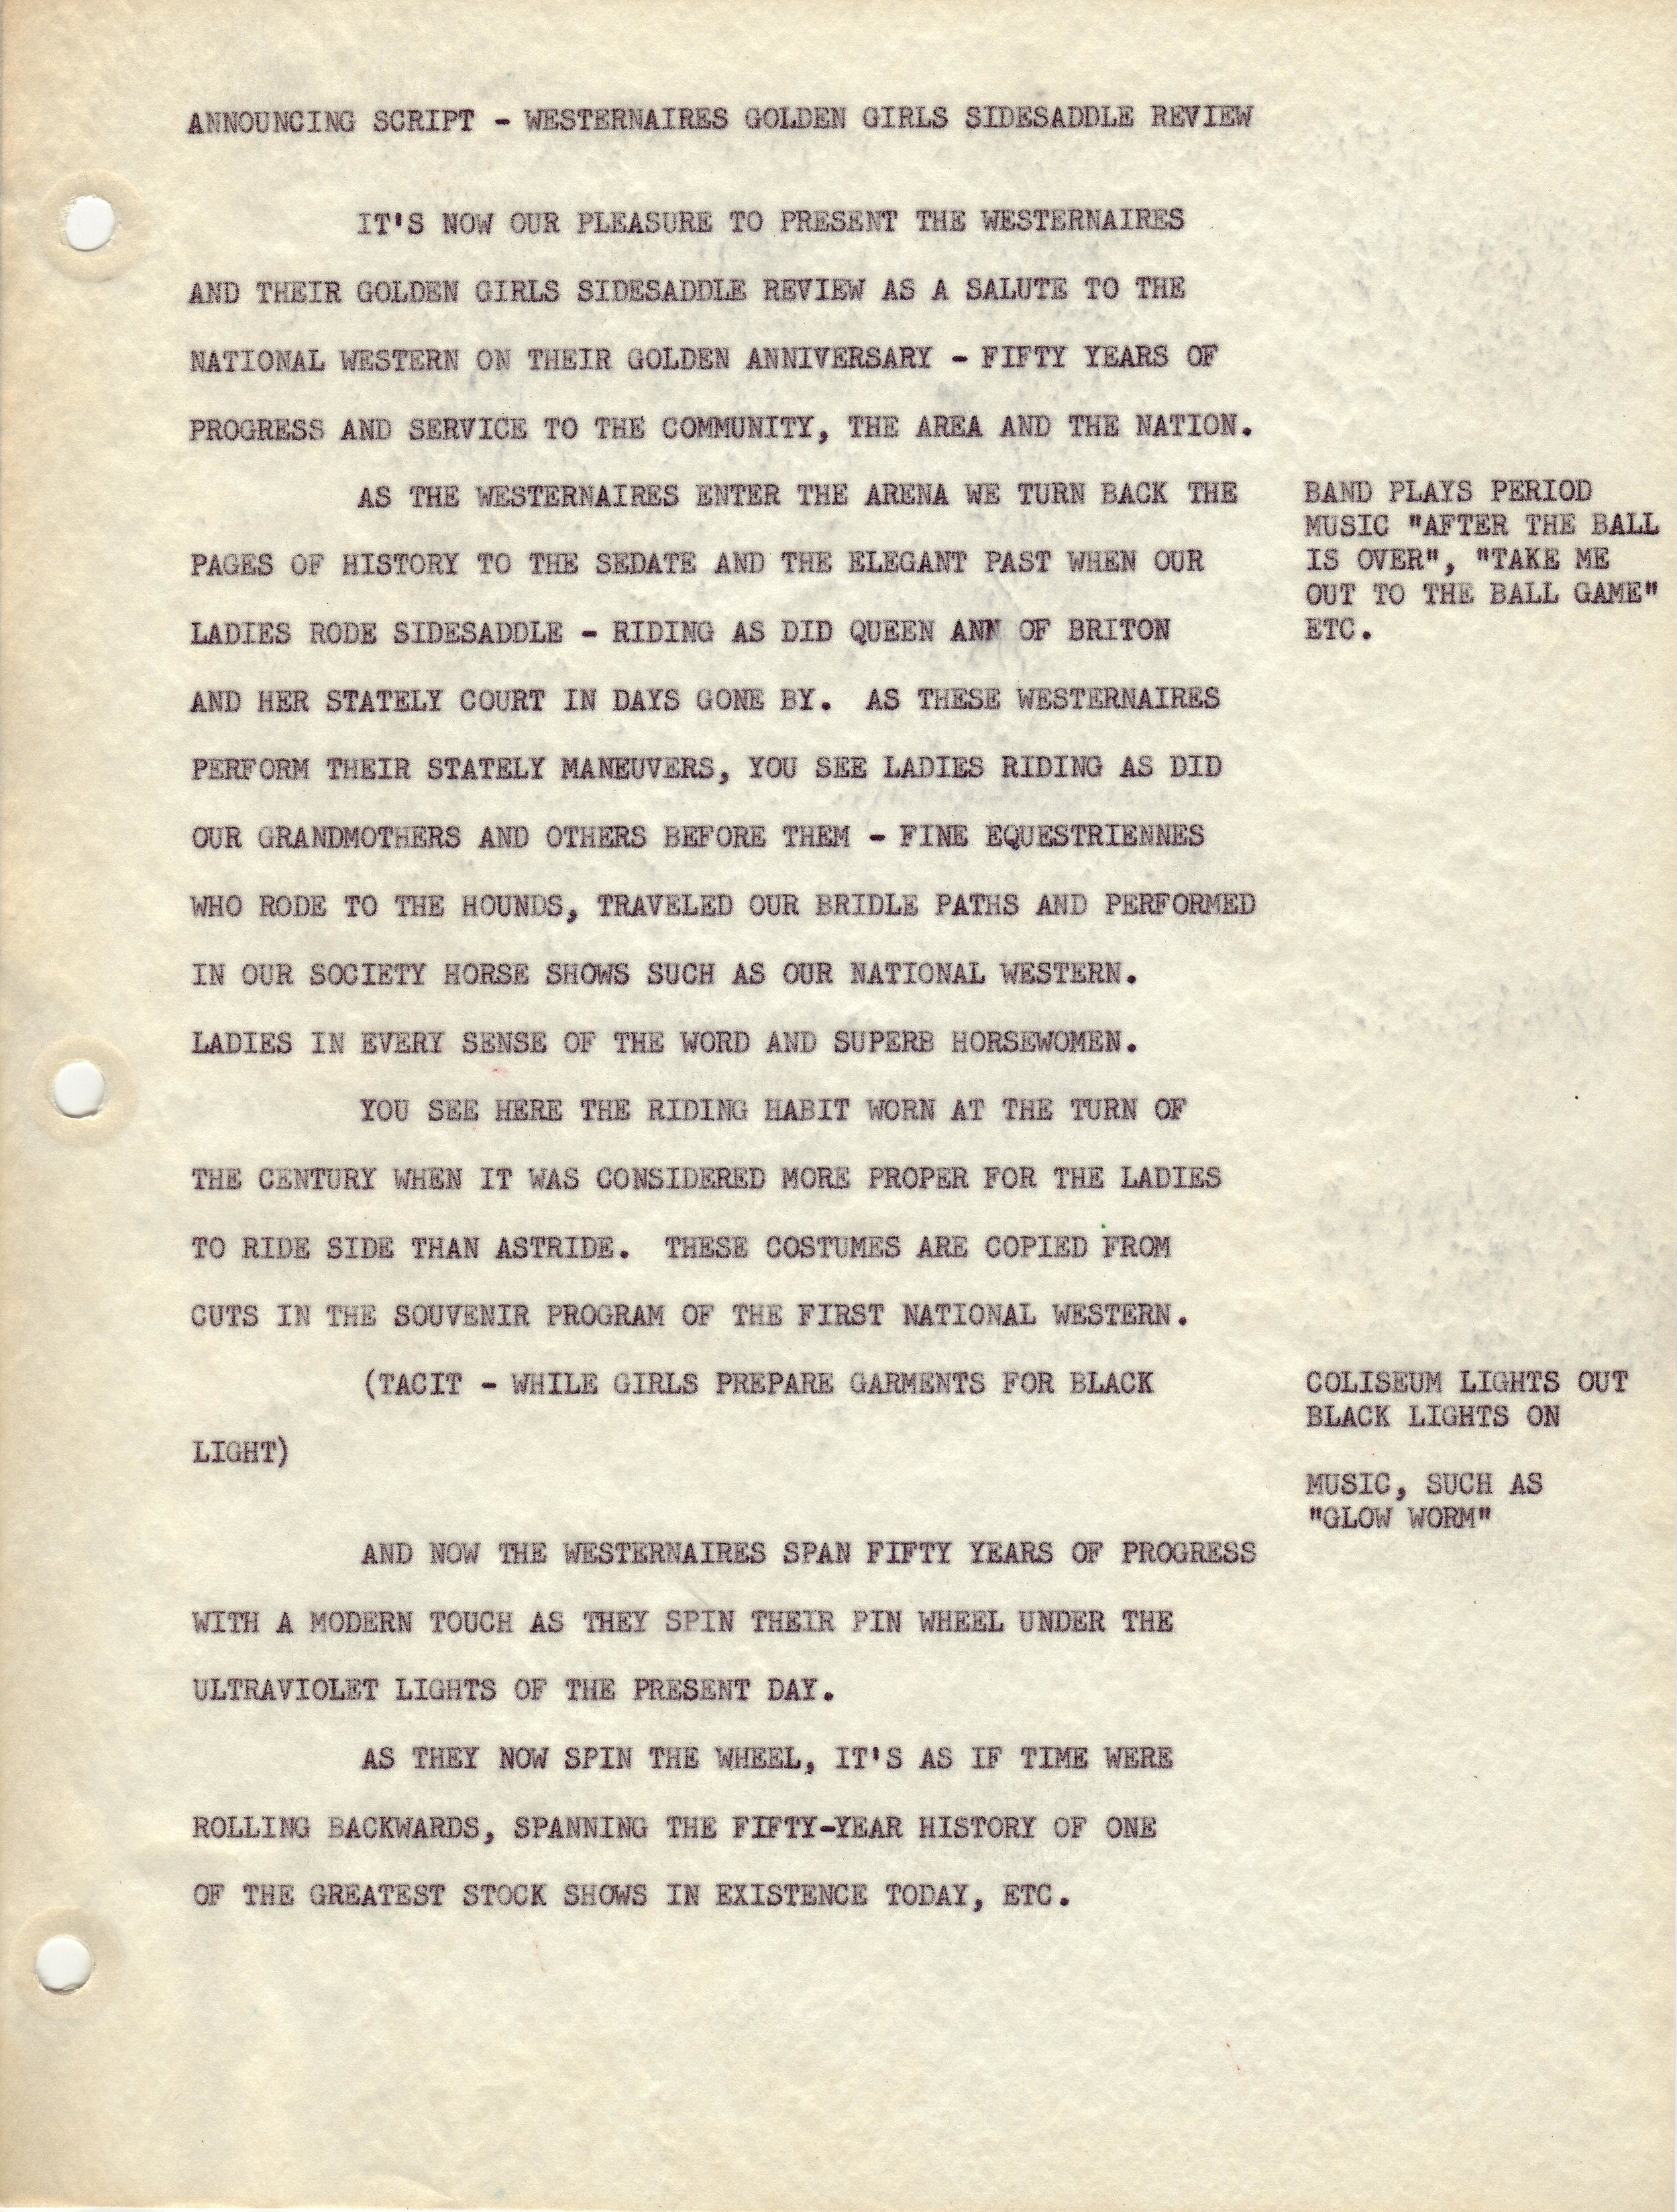 The announcer's script read during the 1956 performance of the Golden Sidesaddle Review act.